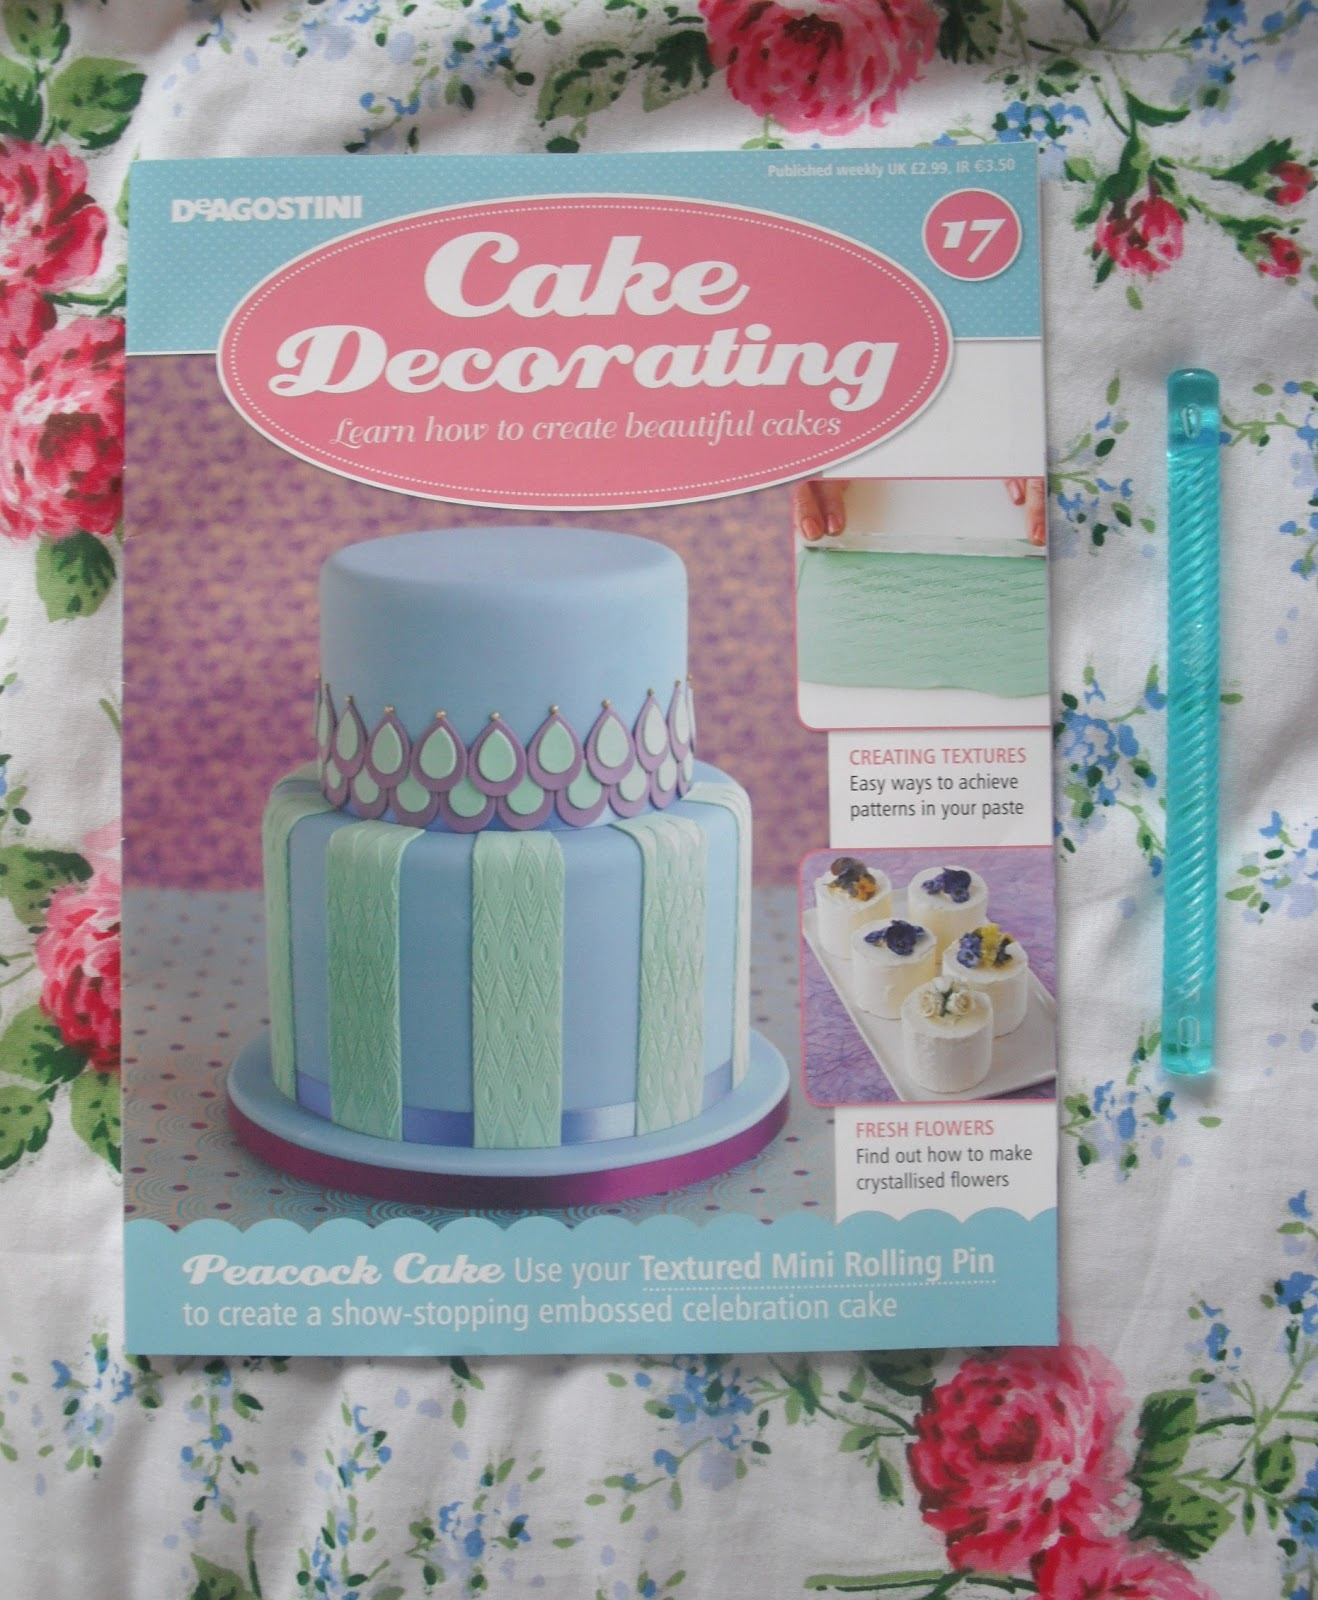 Cake Decorating Magazine Issue 17 - Textured Rolling Pin ...